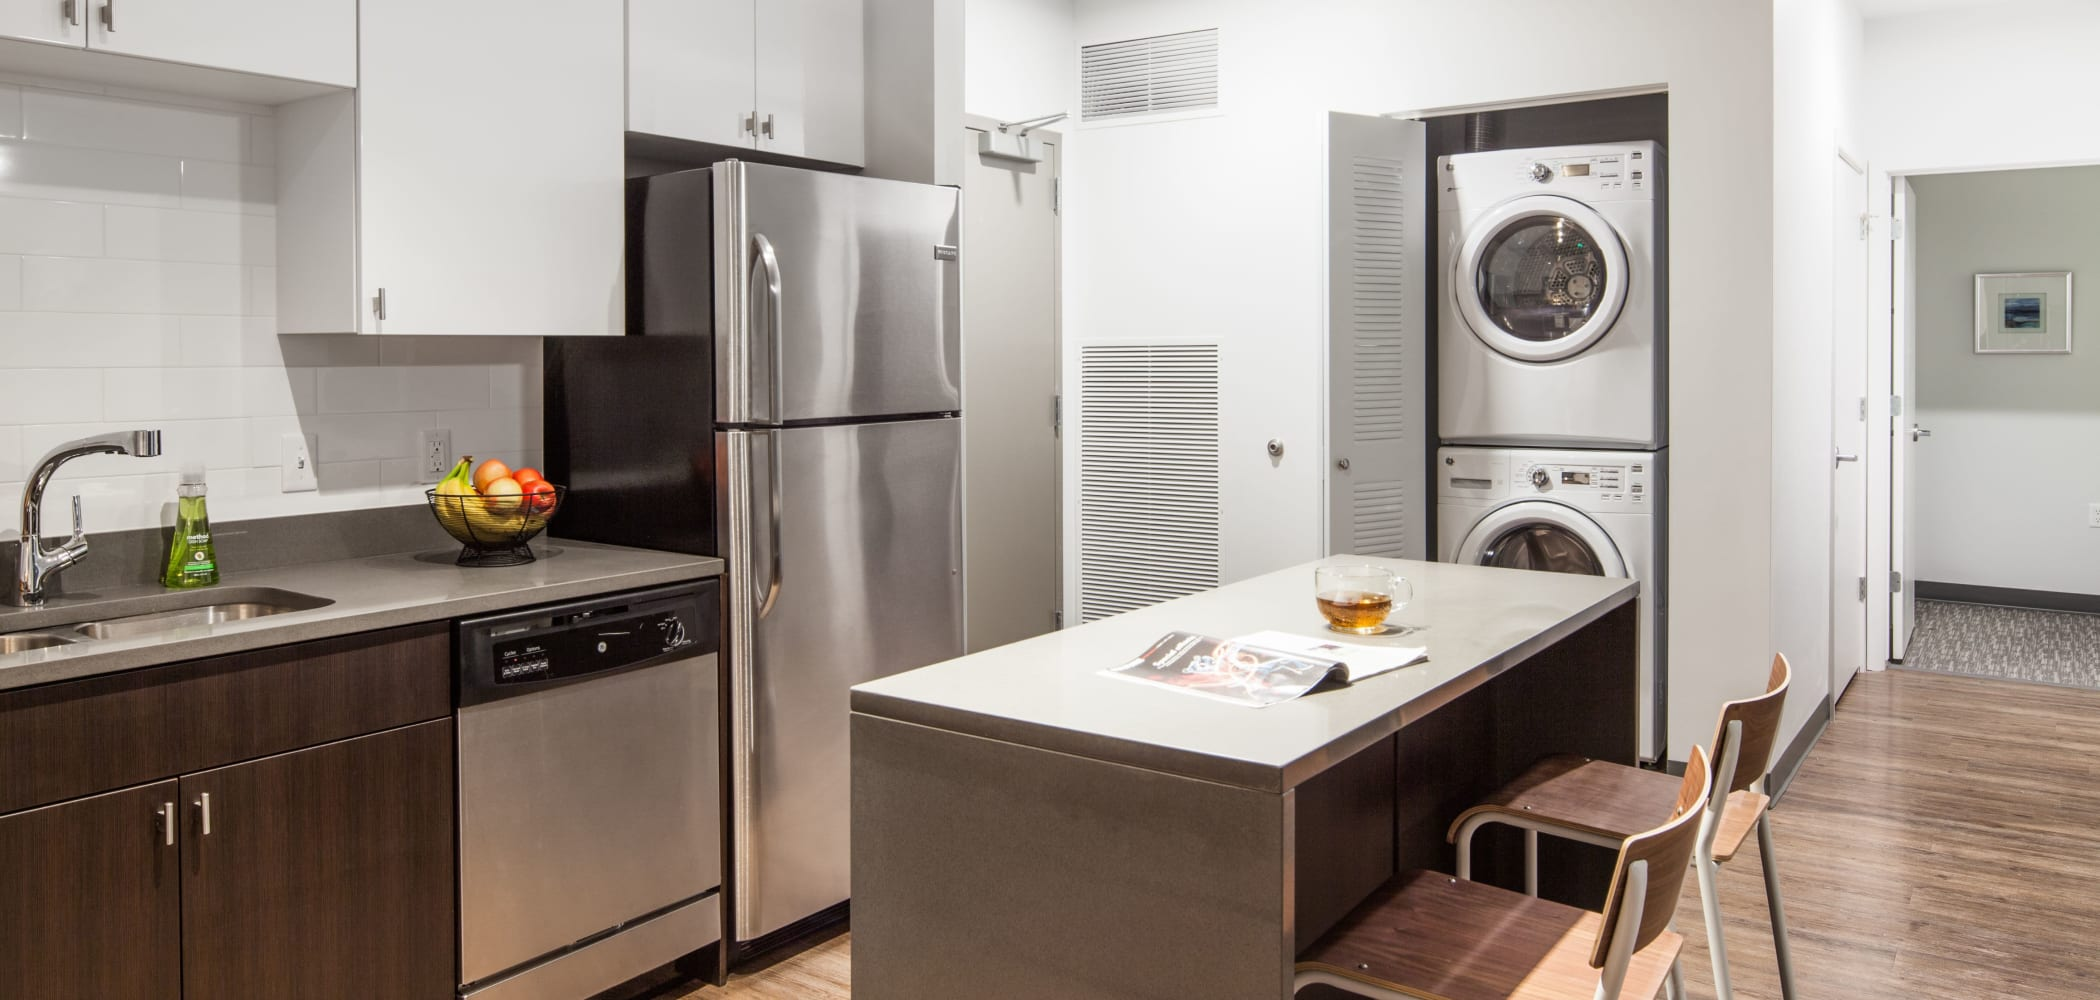 Kitchen with a washer and dryer at LATITUDE in Lincoln, Nebraska